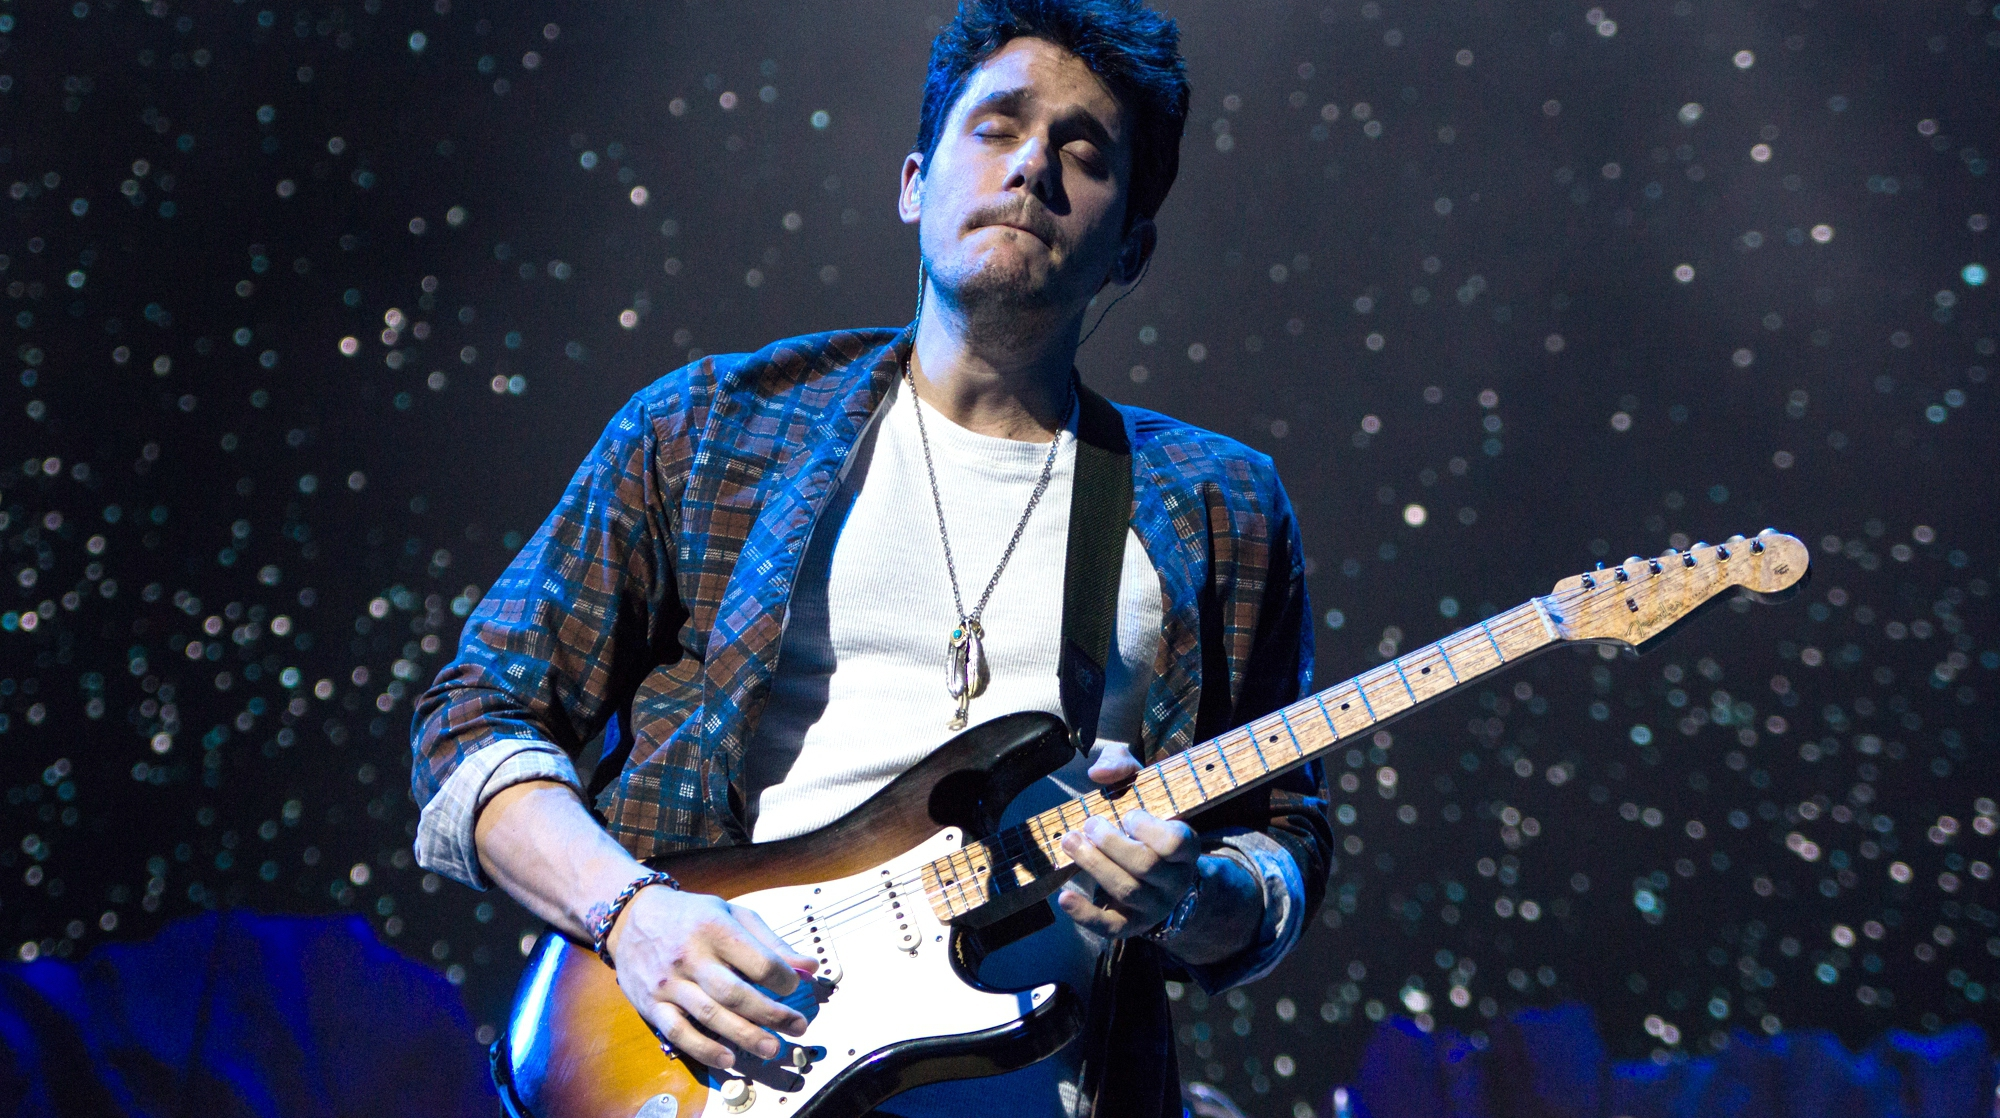 John Mayer Wallpaper: John Mayer Wallpapers Images Photos Pictures Backgrounds